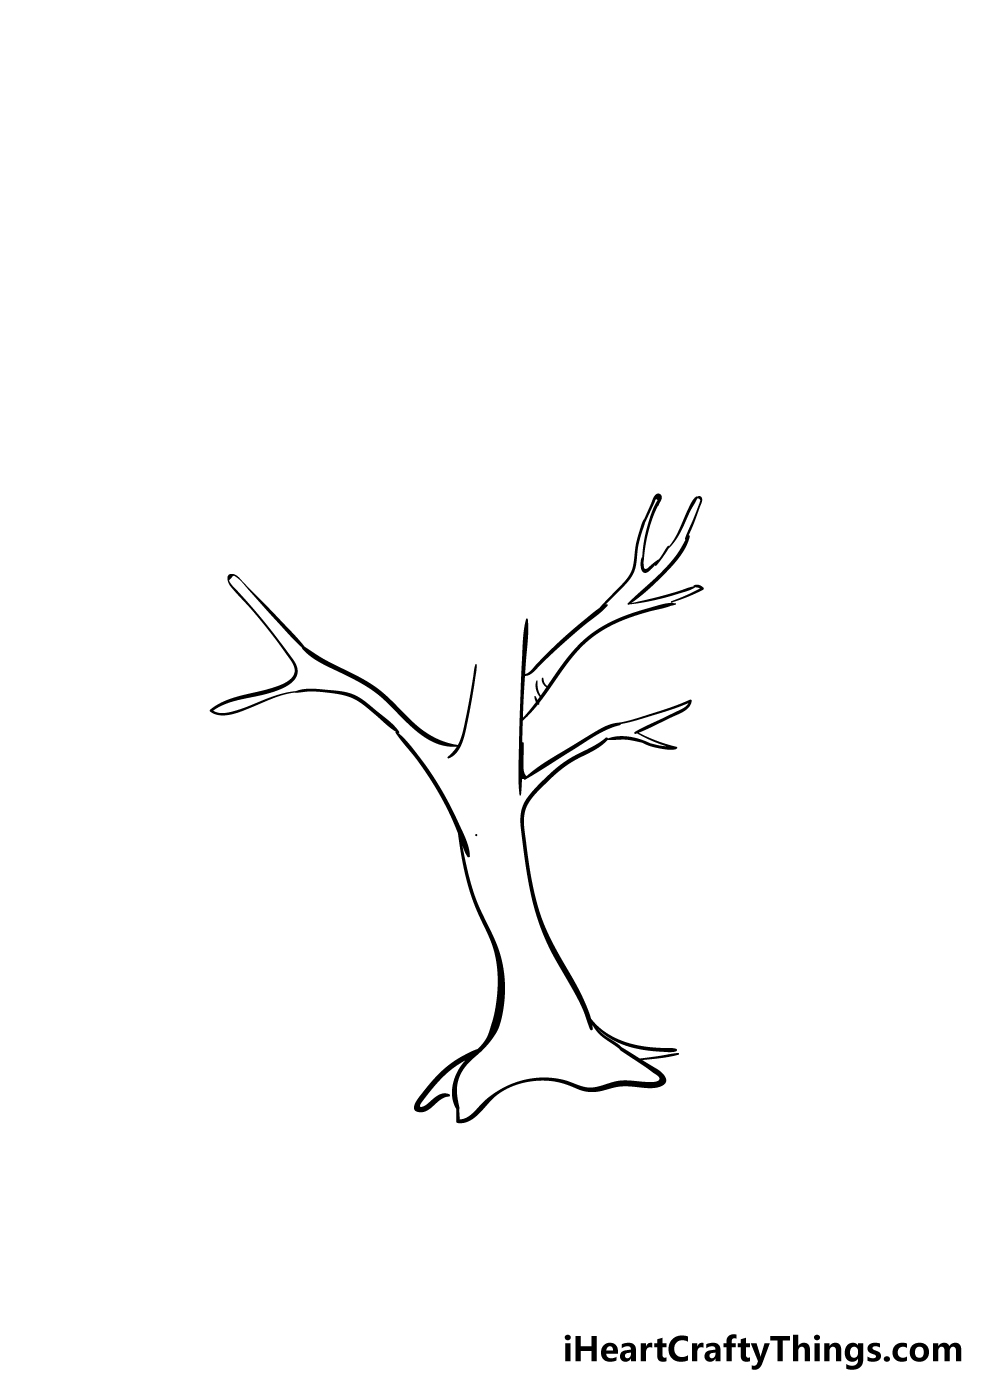 drawing branches step 2